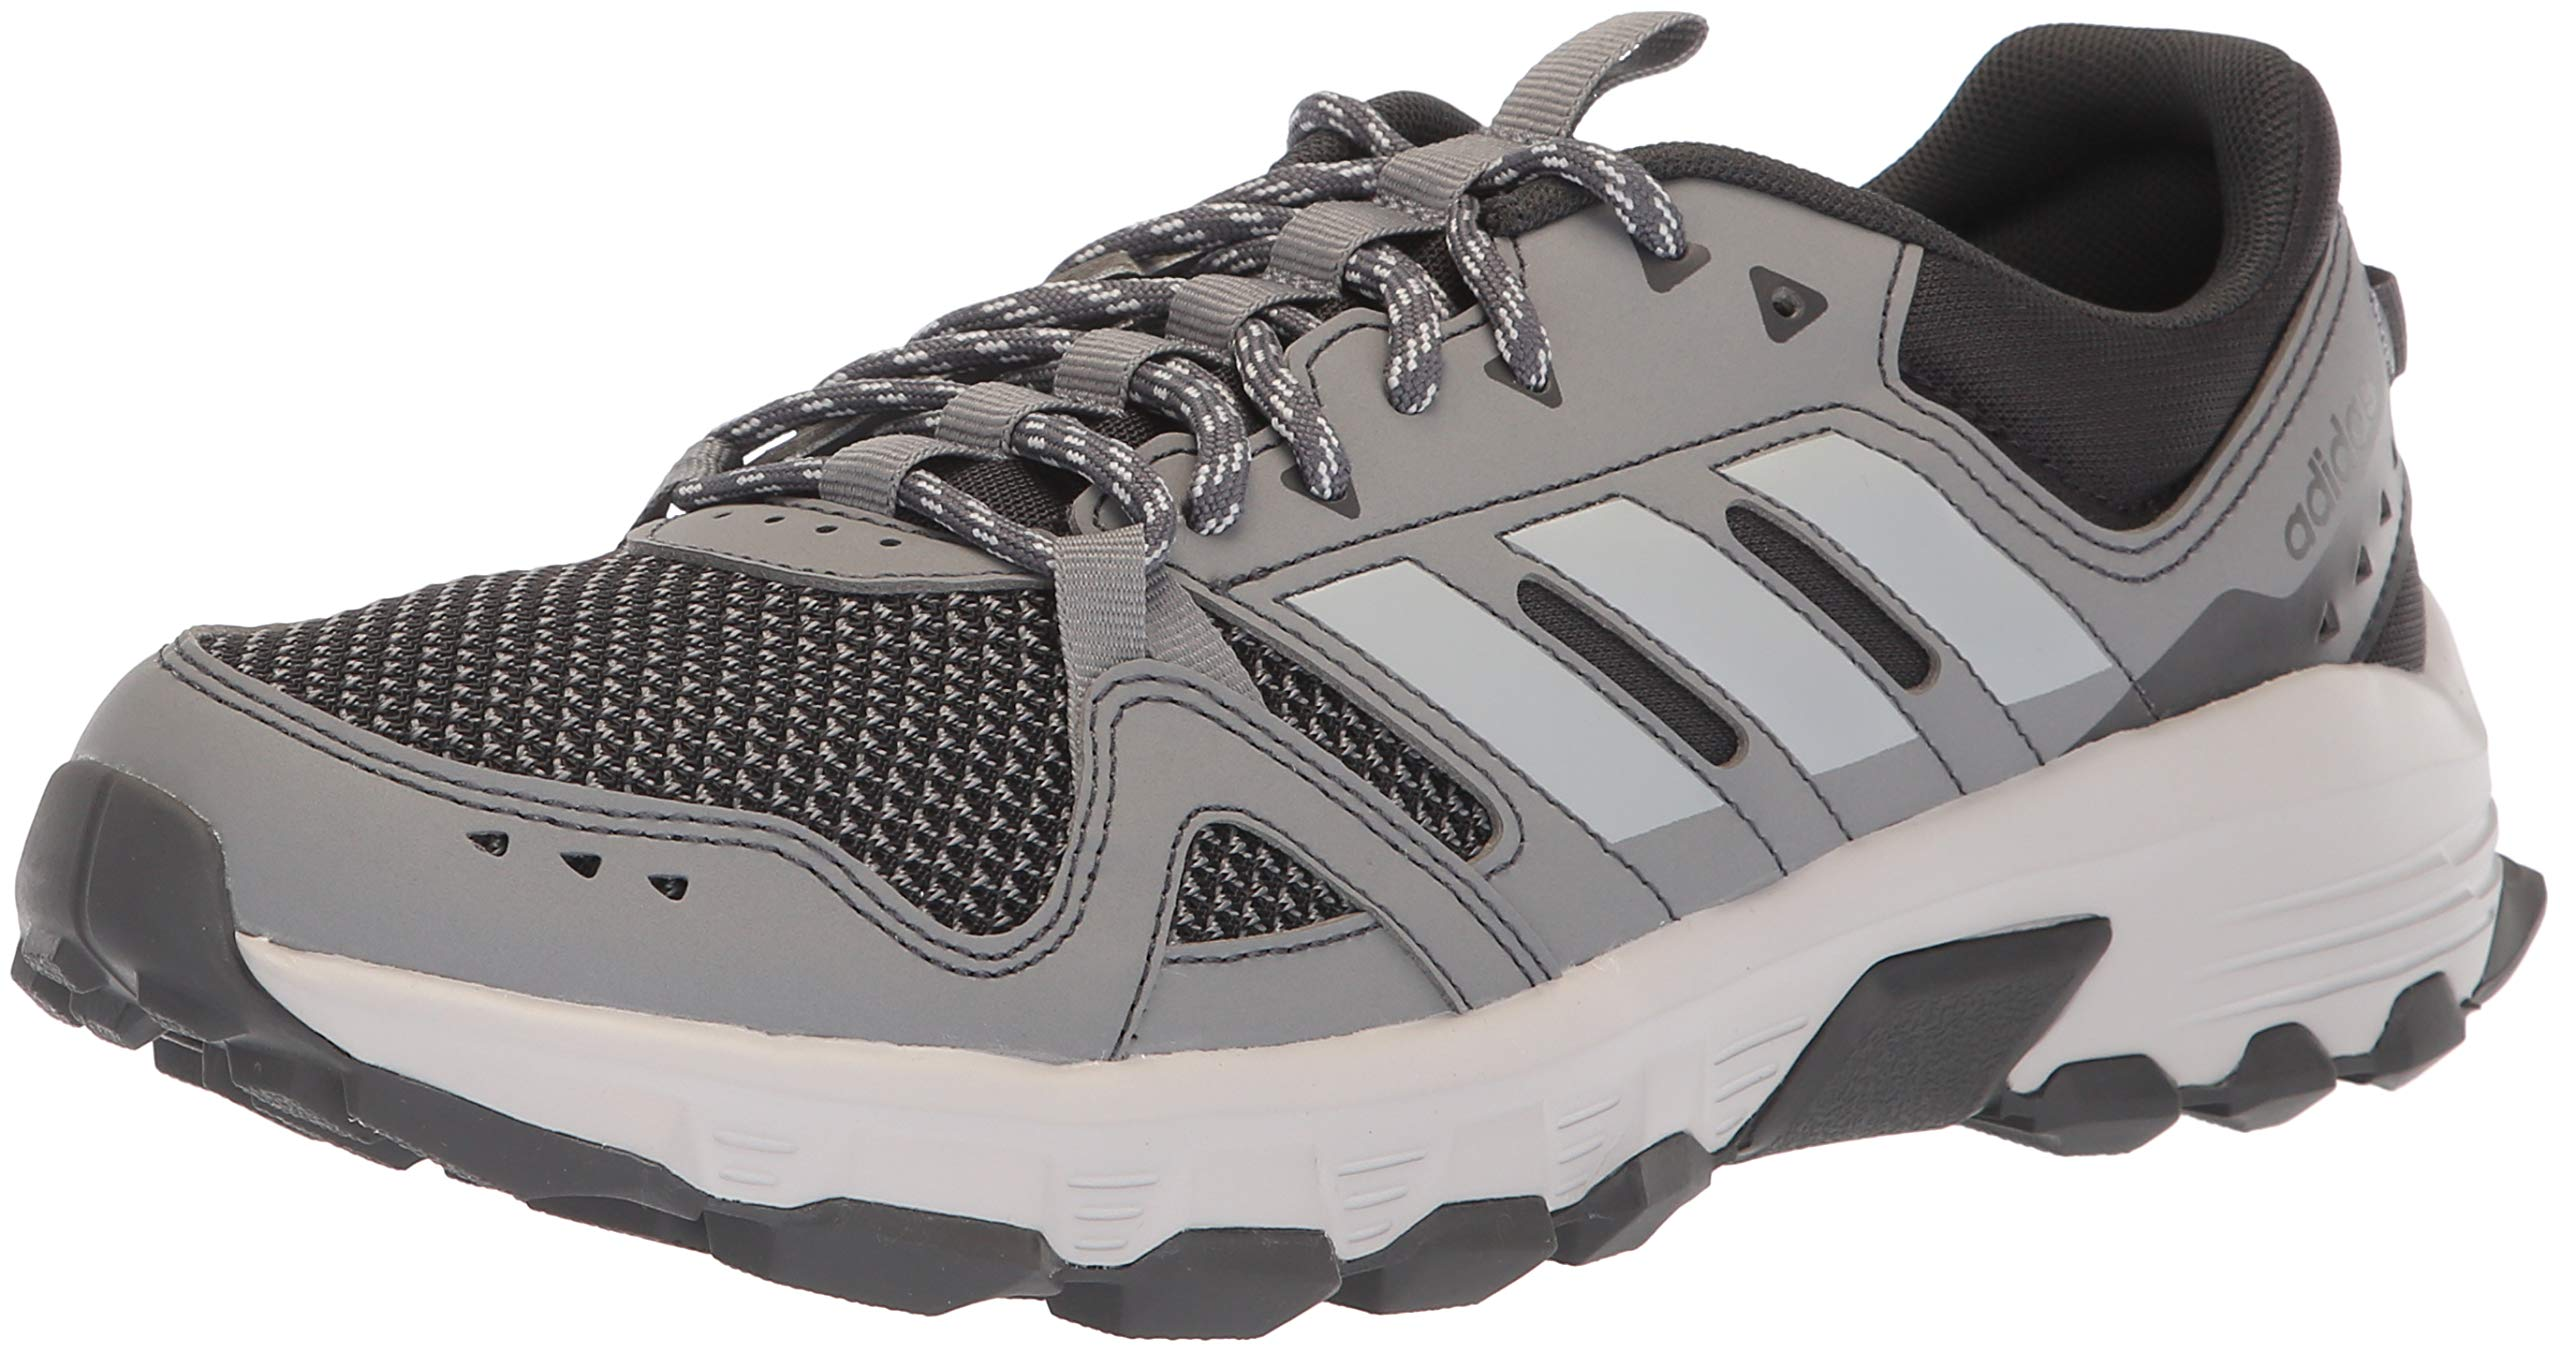 Galleon - Adidas Men s Rockadia Trail Running Shoe 097d0fd32